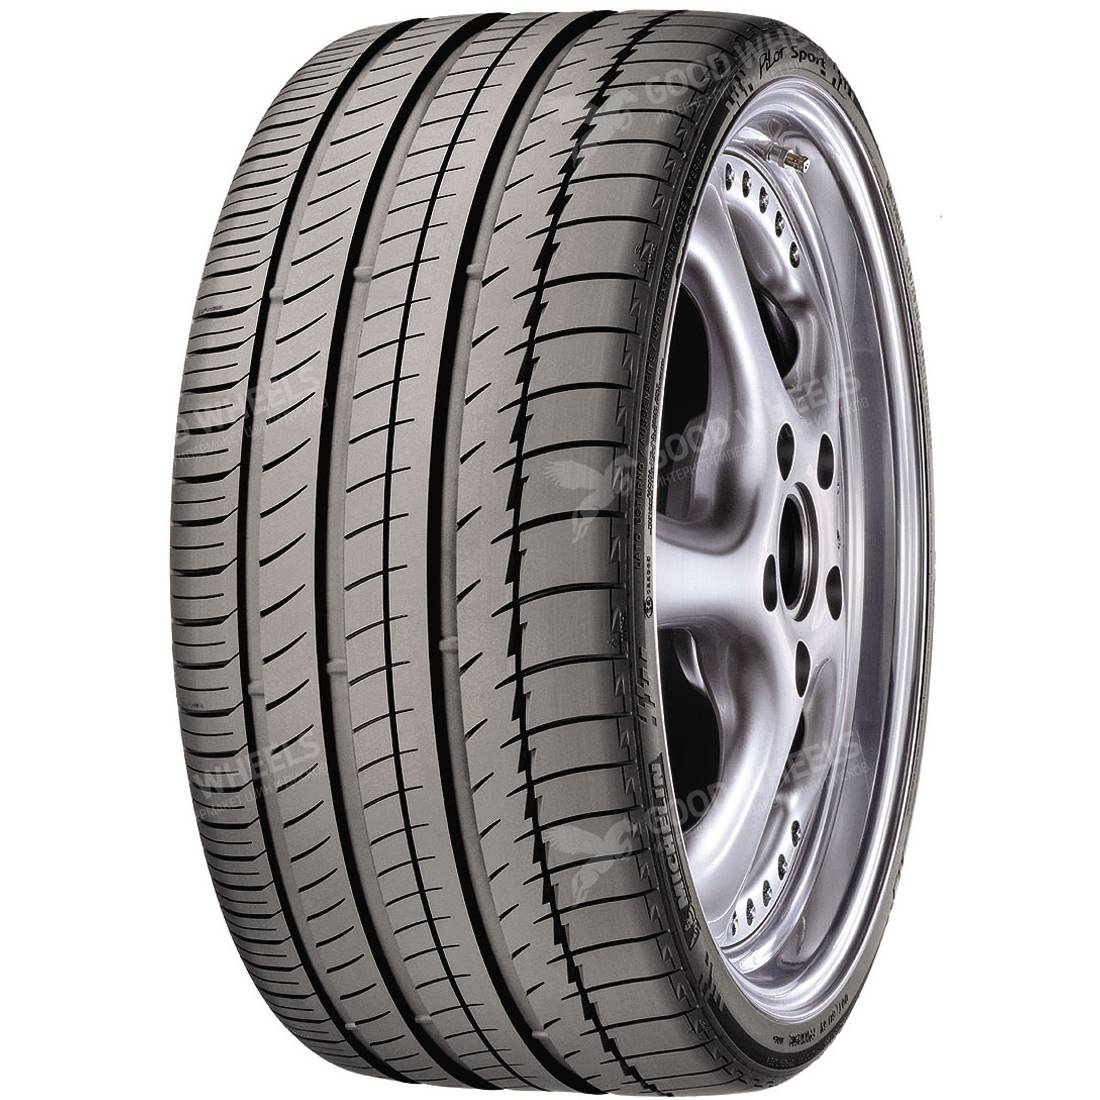 Michelin Pilot Sport 2 (PS2) 285/30 R19 98Y